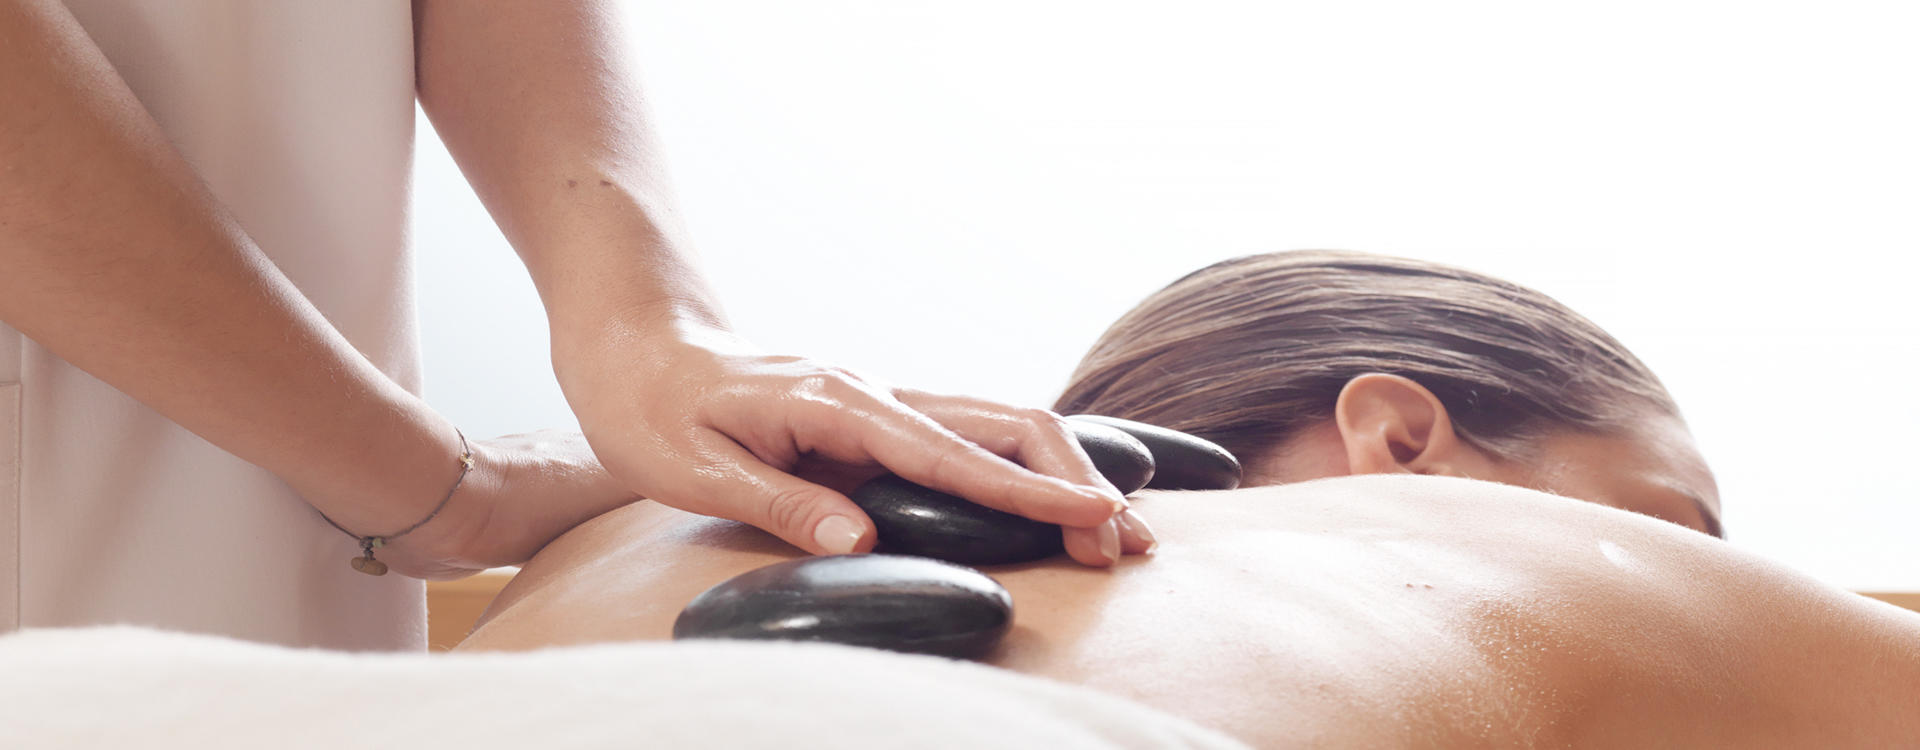 DI_Larissa_Hotel_Relaxing_Hot_Stone_Massage